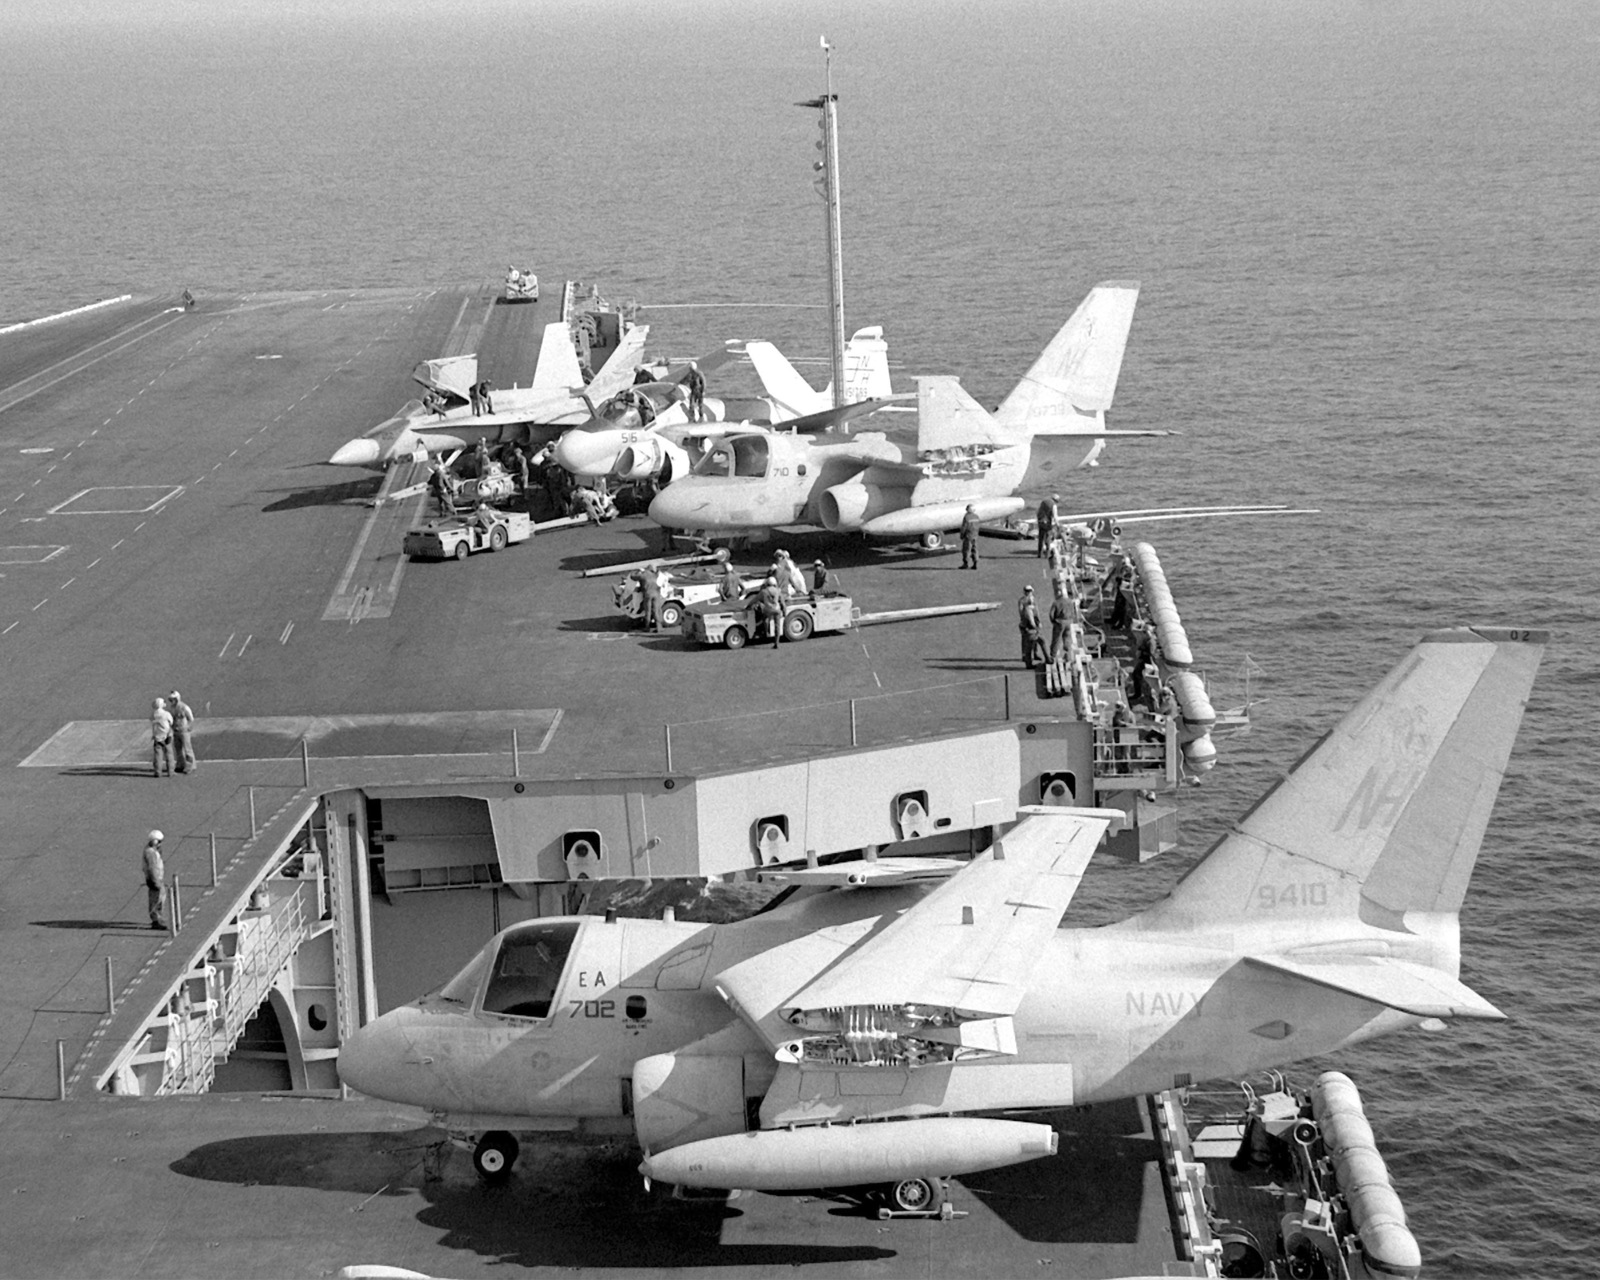 A lowered elevator transports aircraft as Air Anti-submarine Squadron 29 (VS-29) S-3A Viking aircraft, an Attack Squadron 95 (VA-95) A-6E Intruder aircraft, and a Strike Fighter Squadron 305 (VFA-305) F/A-18 Horner aircraft stand on the flight deck of the nuclear-powered aircraft carrier USS ABRAHAM LINCOLN (CVN-72)